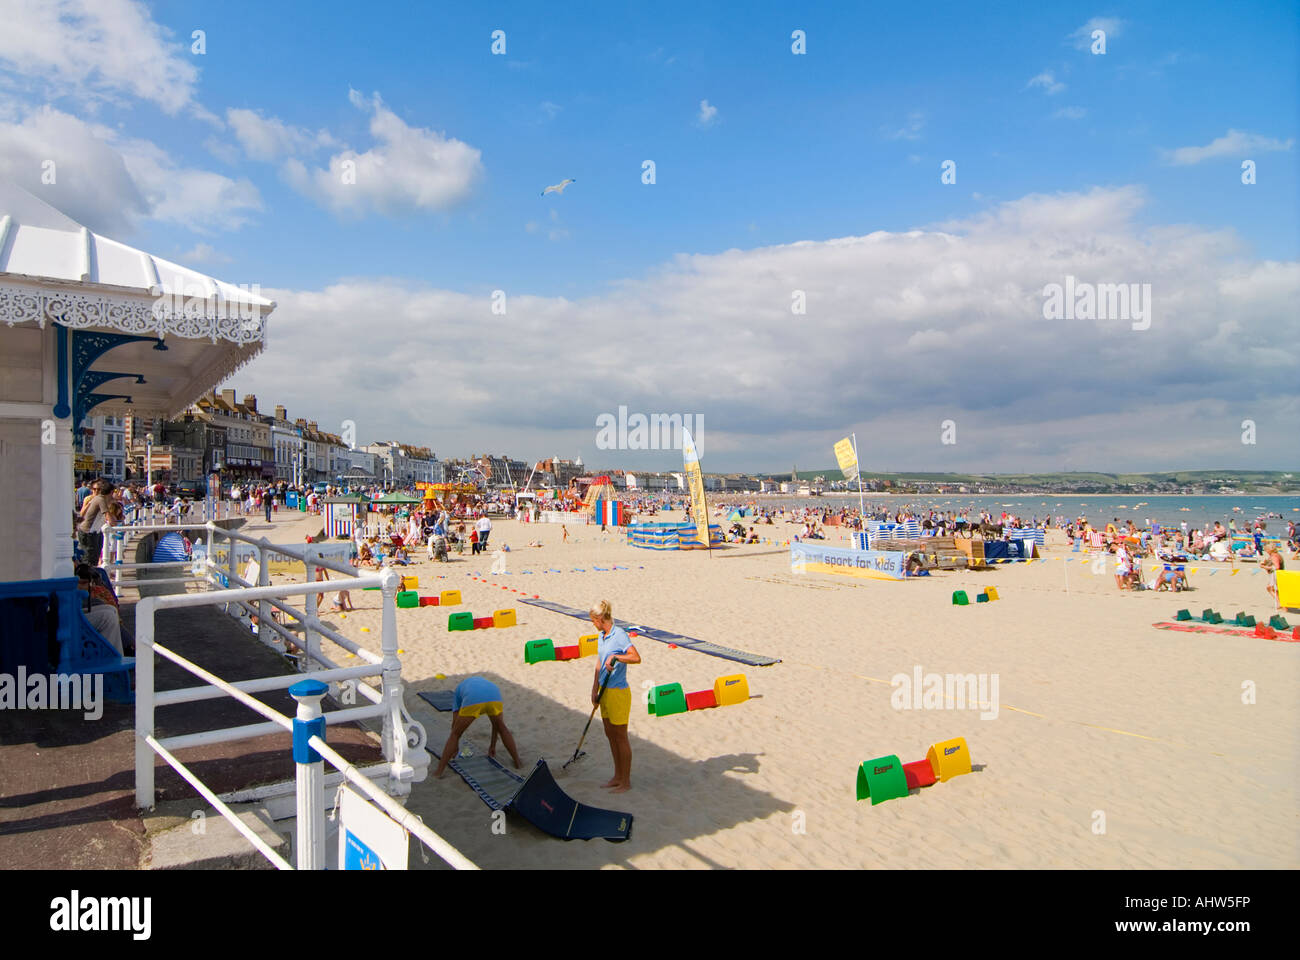 Horizontal wide angle of a typical English beach scene with lots of tourists on the sand at Weymouth Bay. - Stock Image